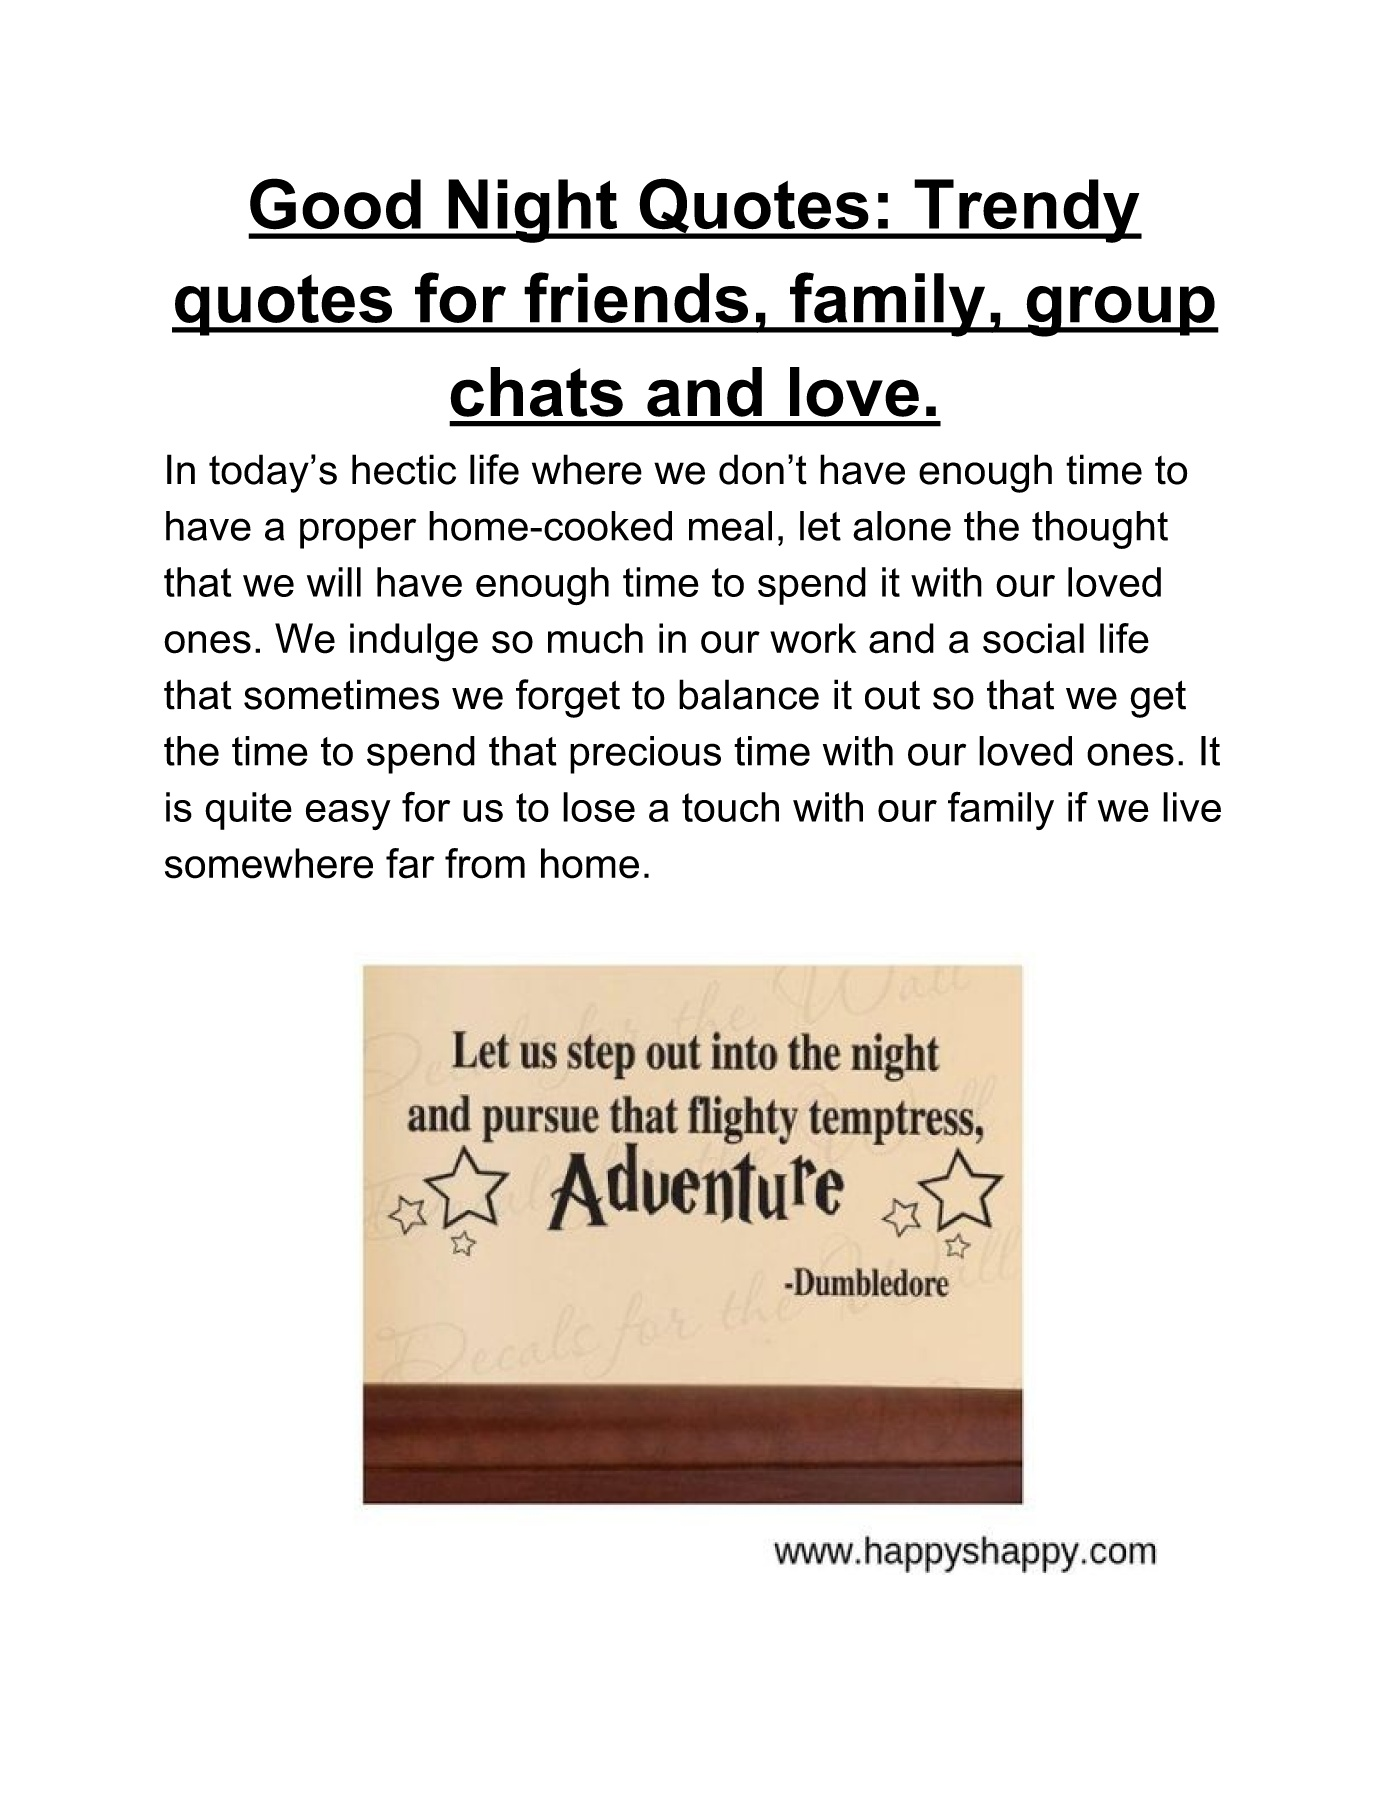 good night quotes trendy quotes for friends family group chats